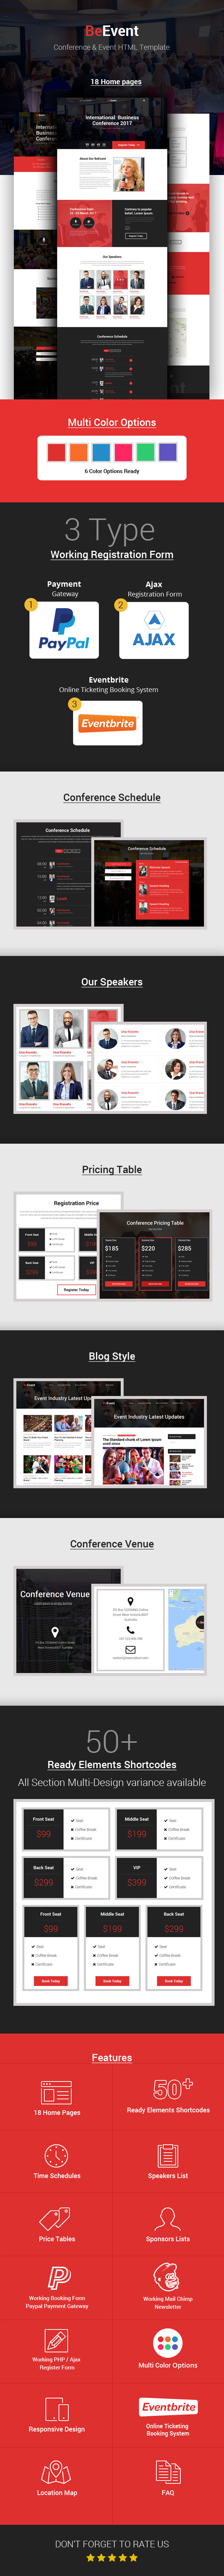 BeEvent - Conference & Event HTML Template by webmasterdriver ...